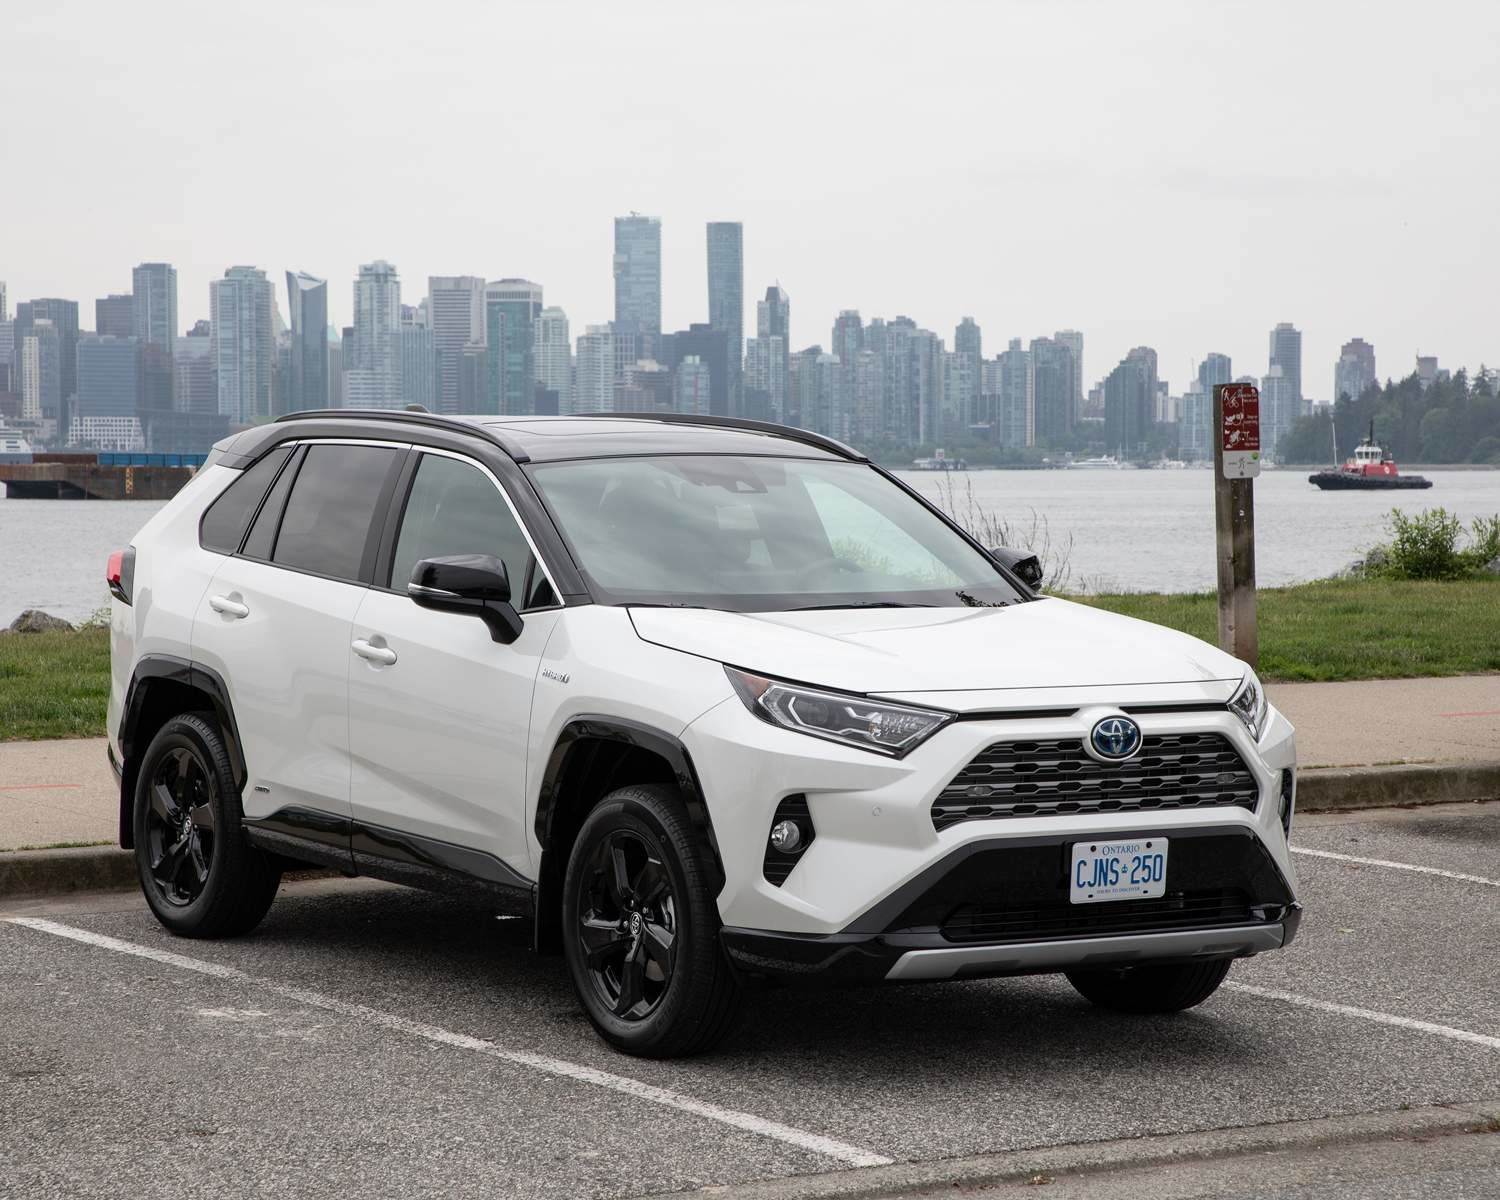 RAV4 Hybrid XSE with Technology Package in Vancouver, BC